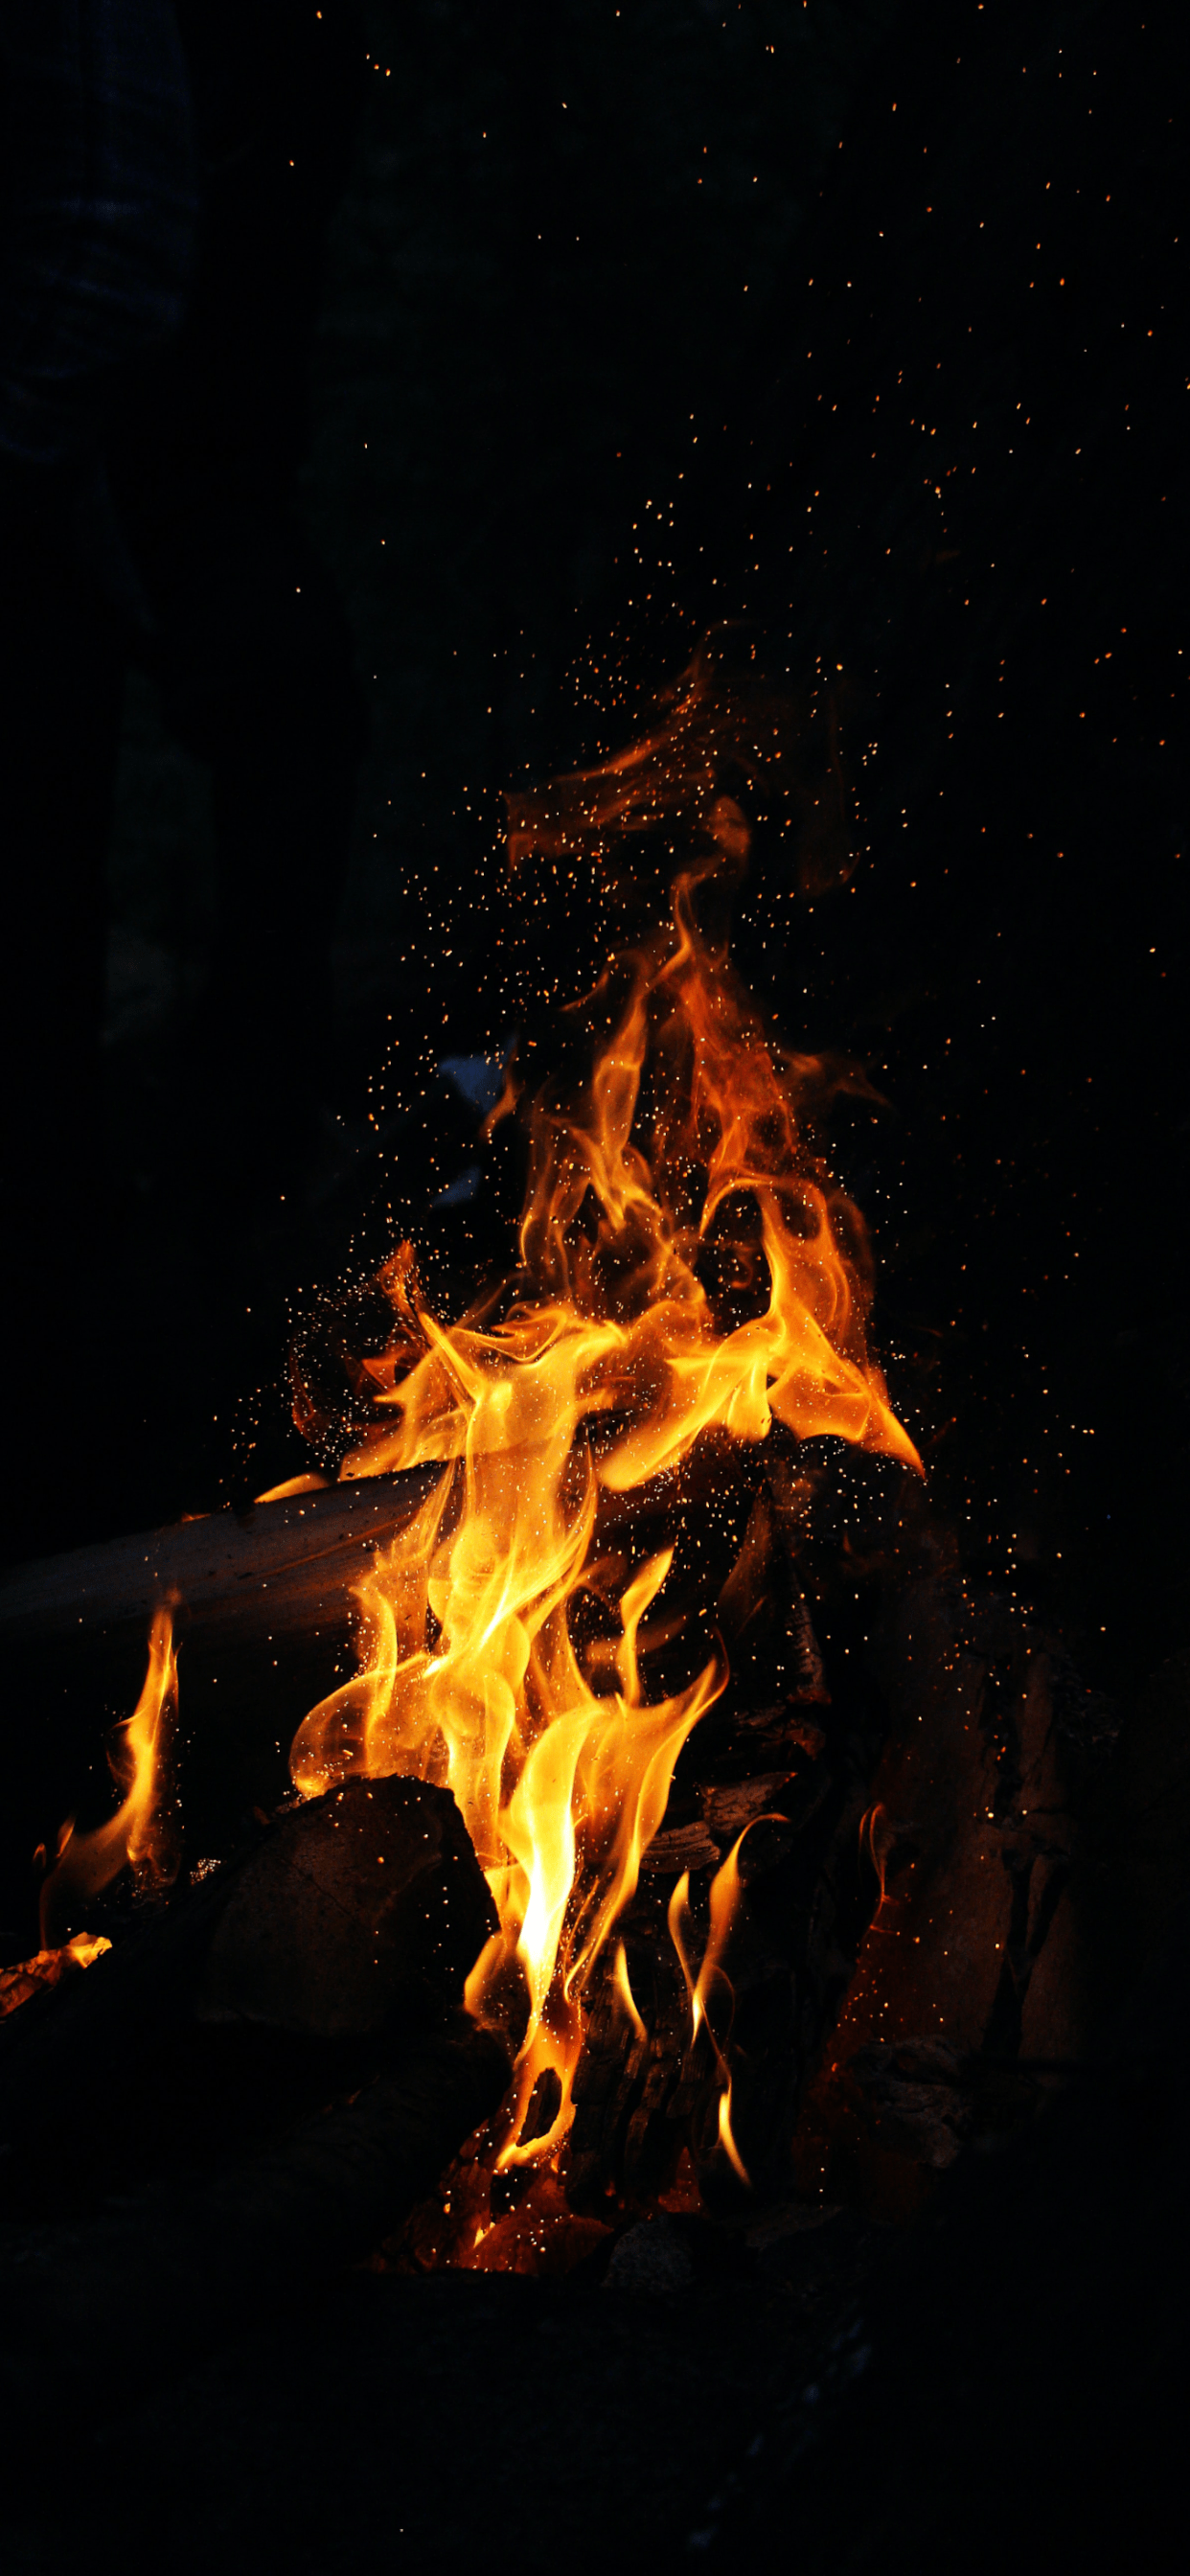 iPhone wallpapers fire bonfire Fire